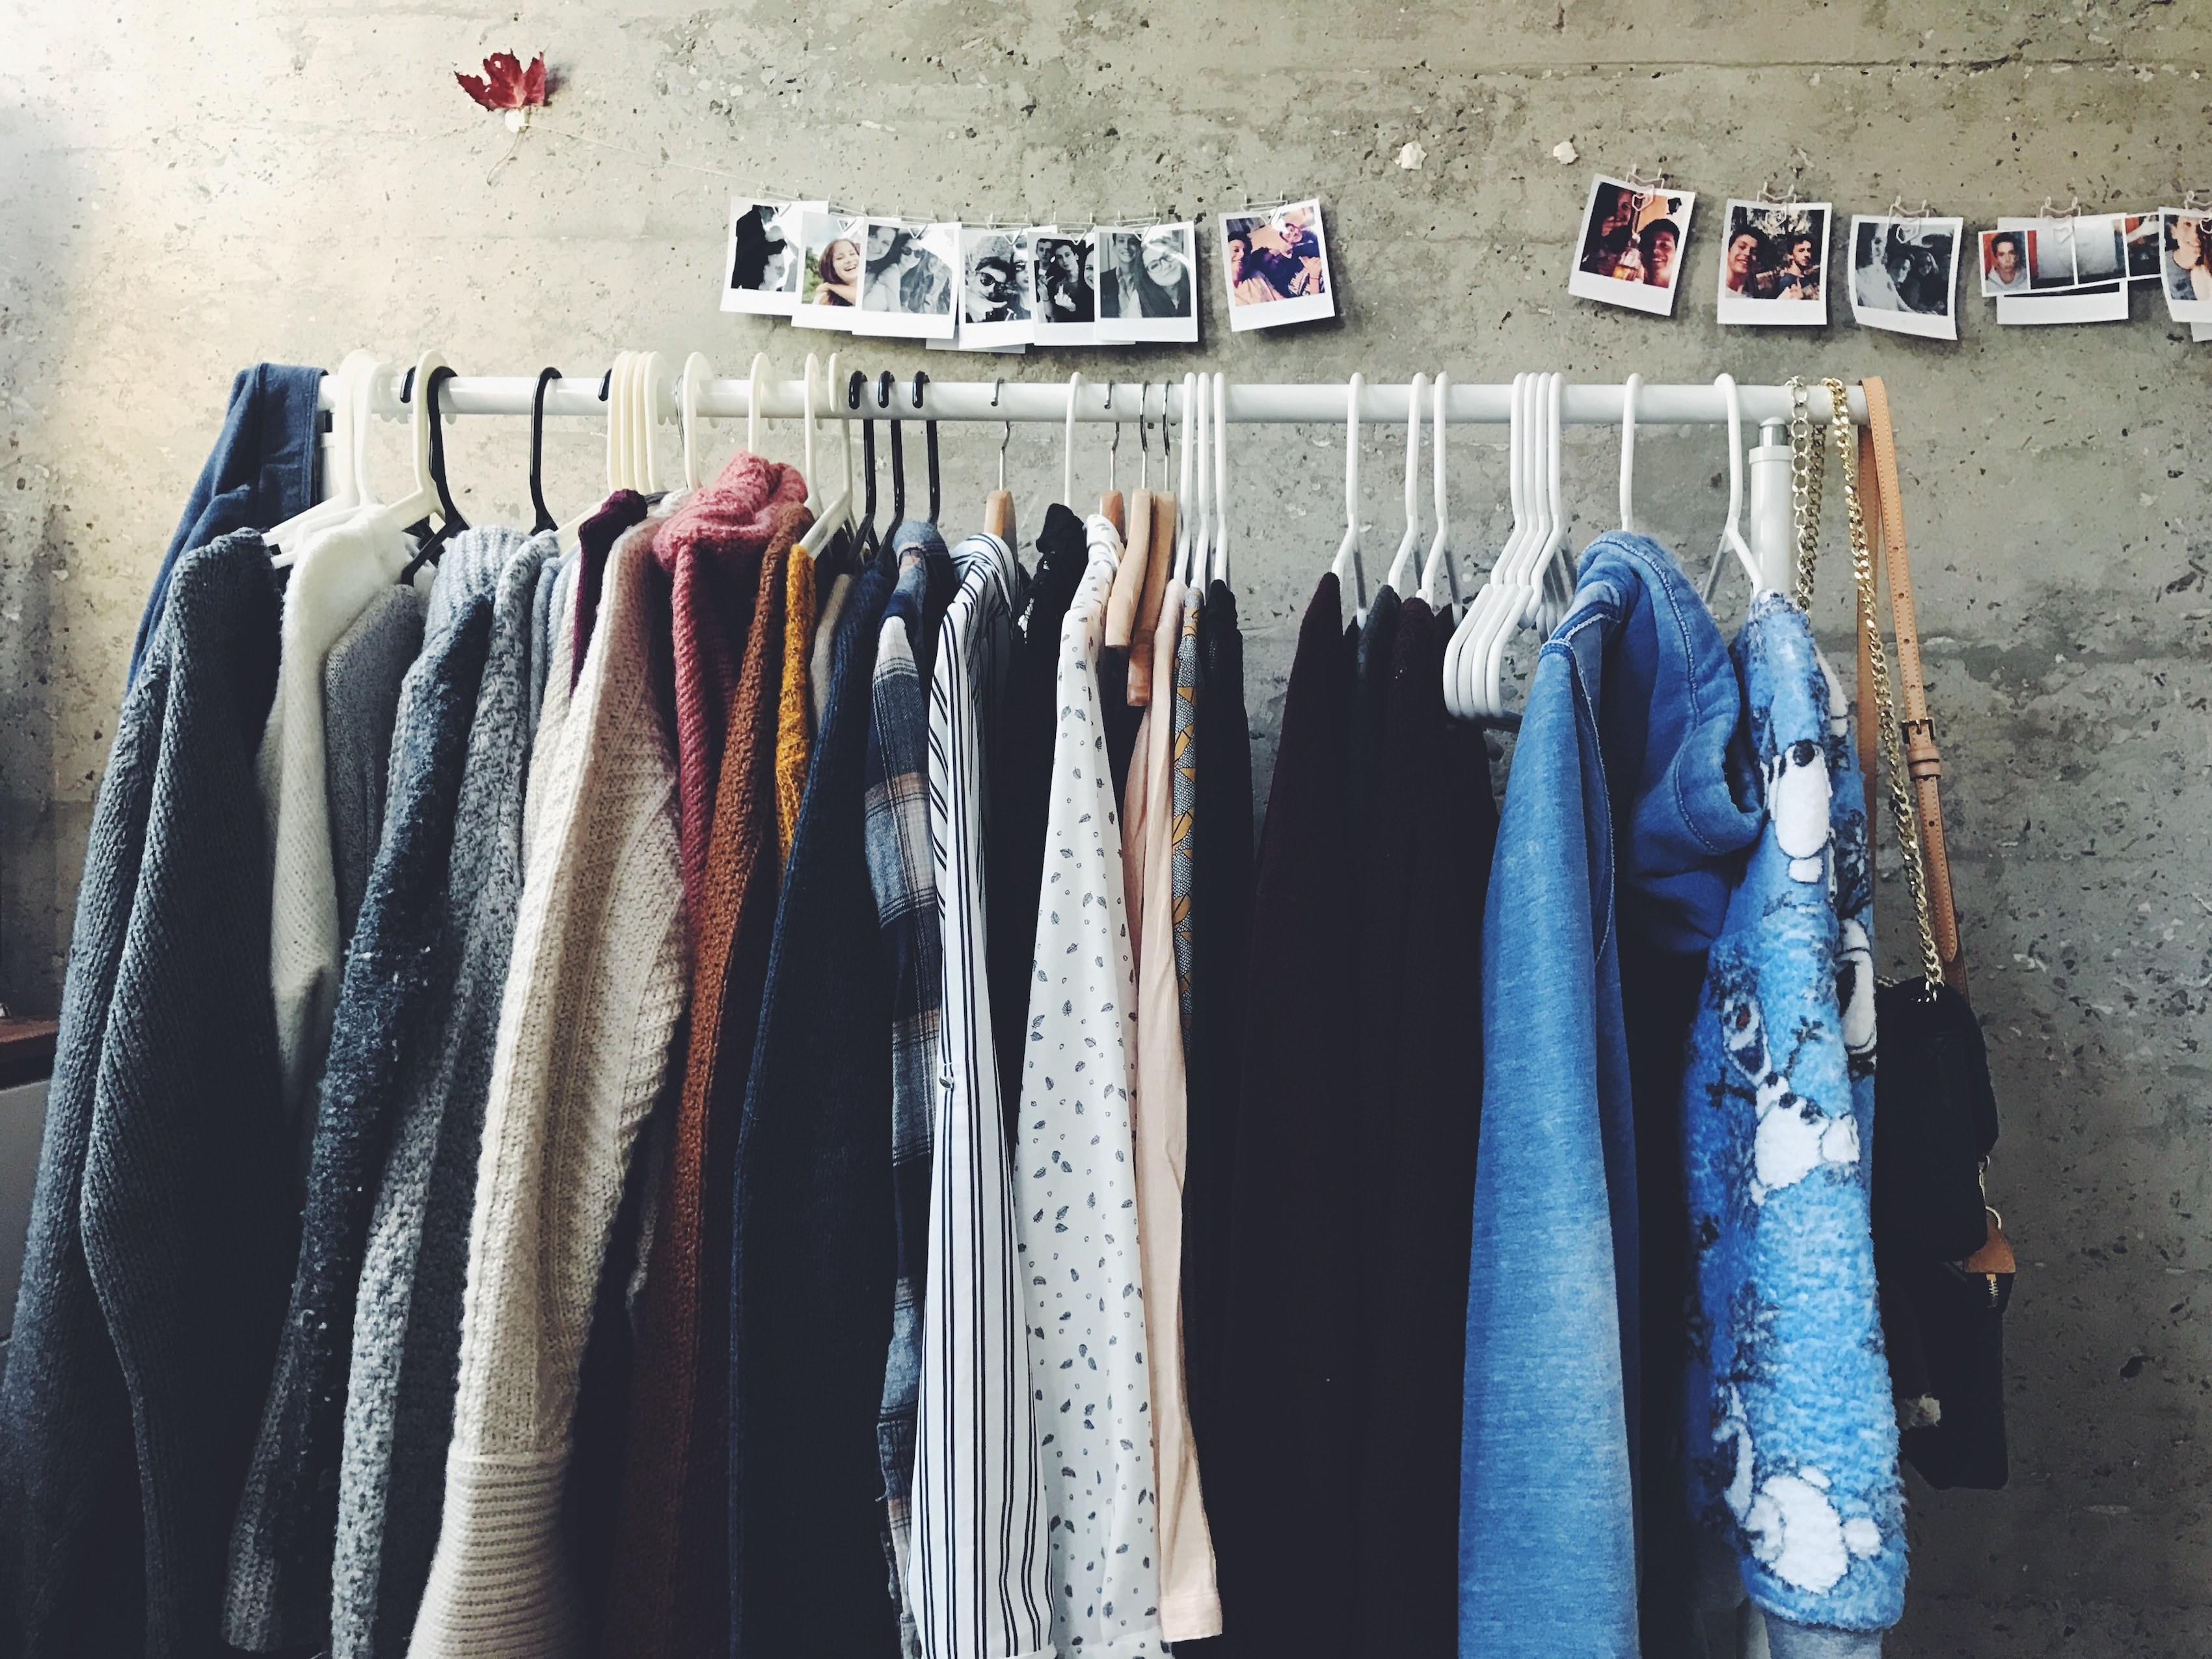 Clothes hanging on clothes rack